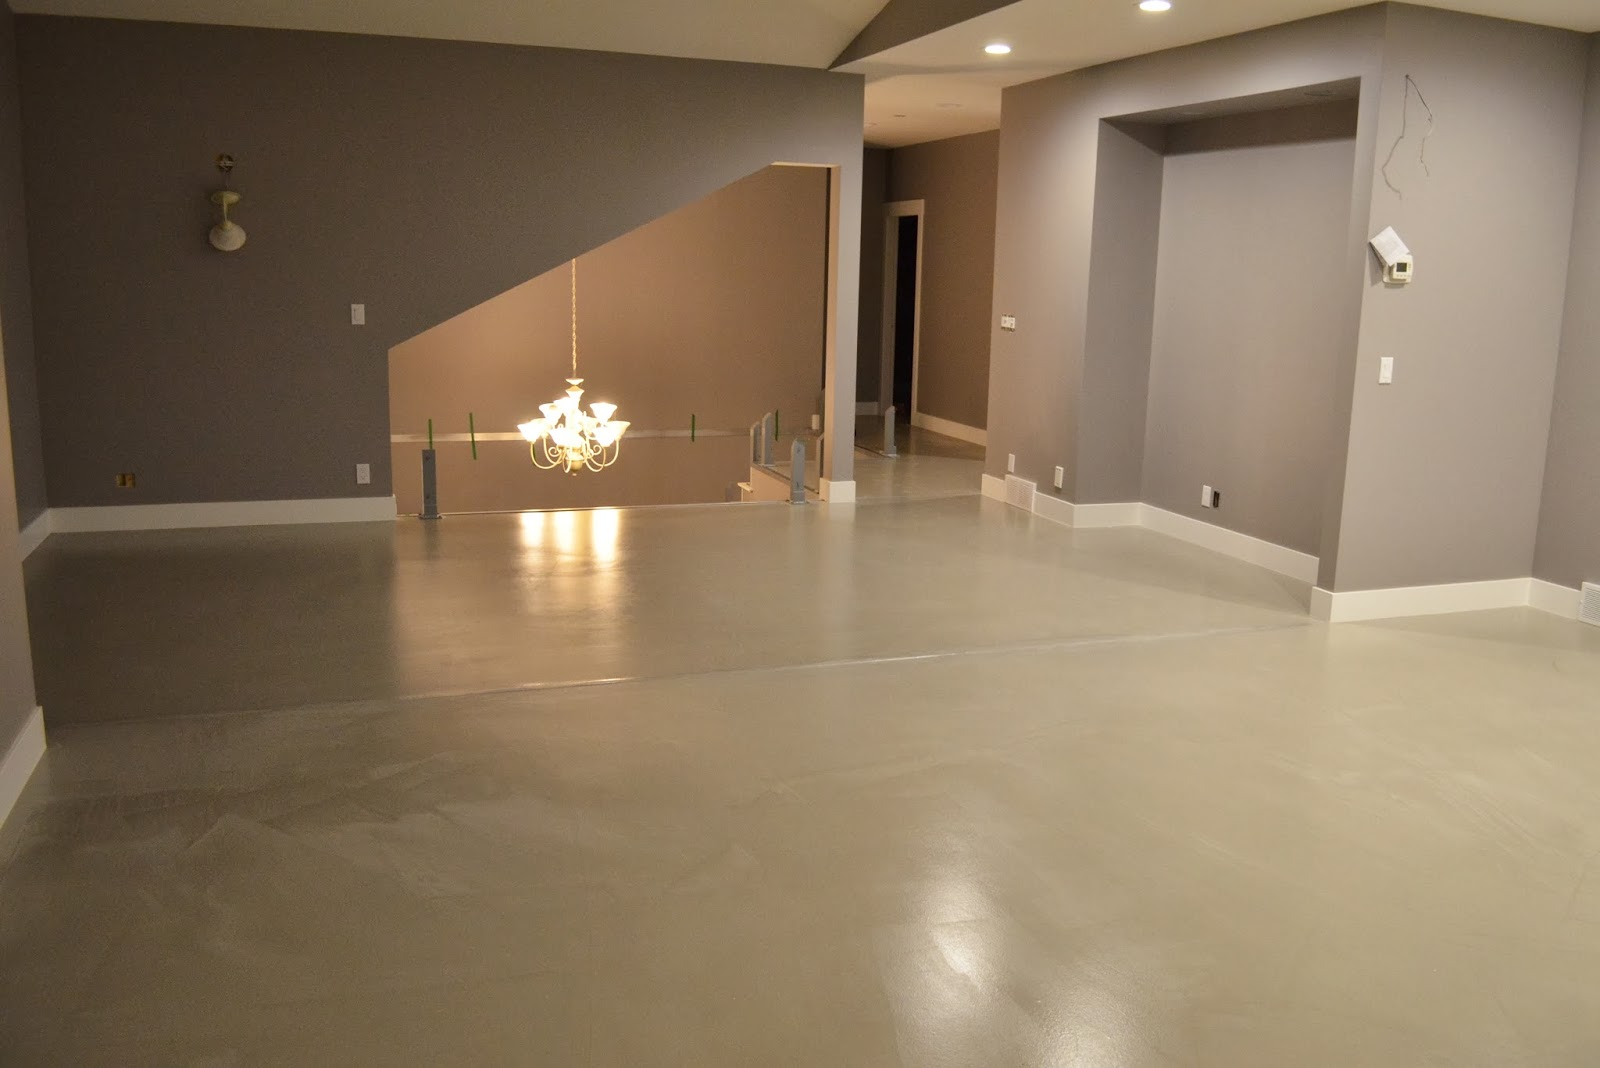 Mode Concrete Contemporary Concrete Flooring Overlay Possible On